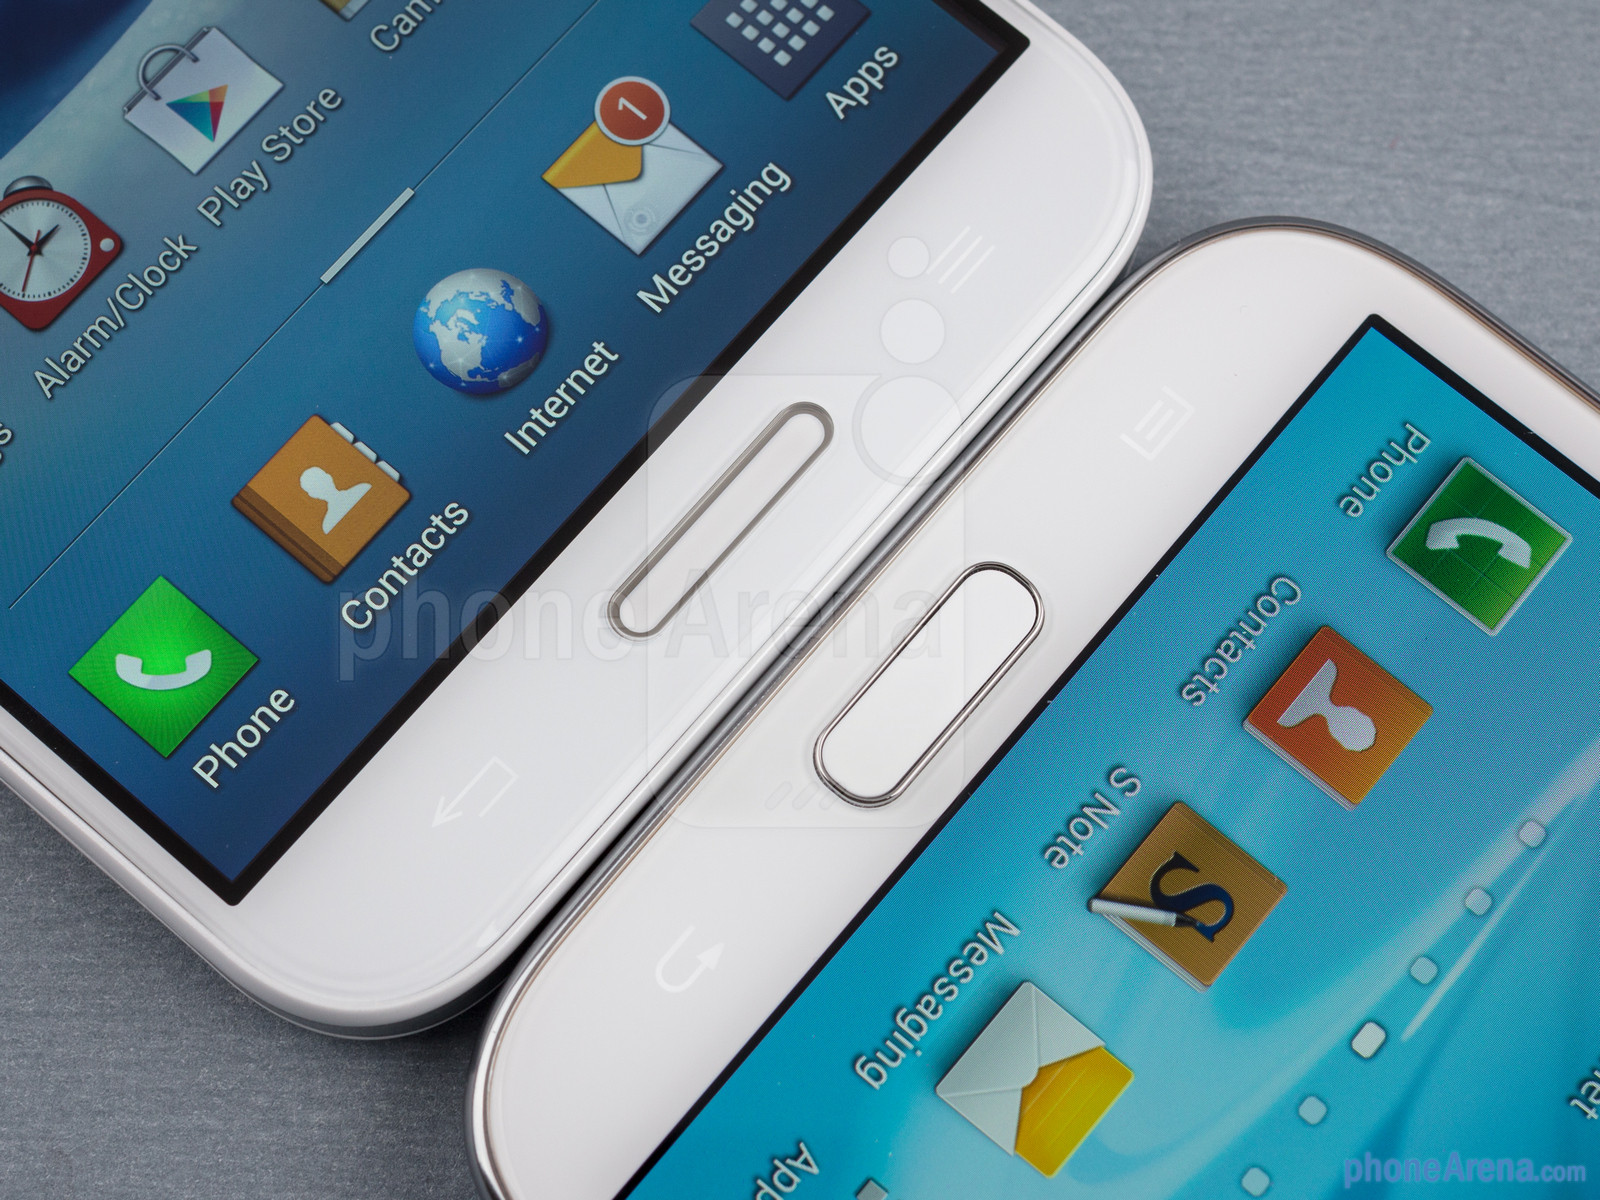 Android buttons - The LG Optimus G Pro (left) and the Samsung Galaxy Note